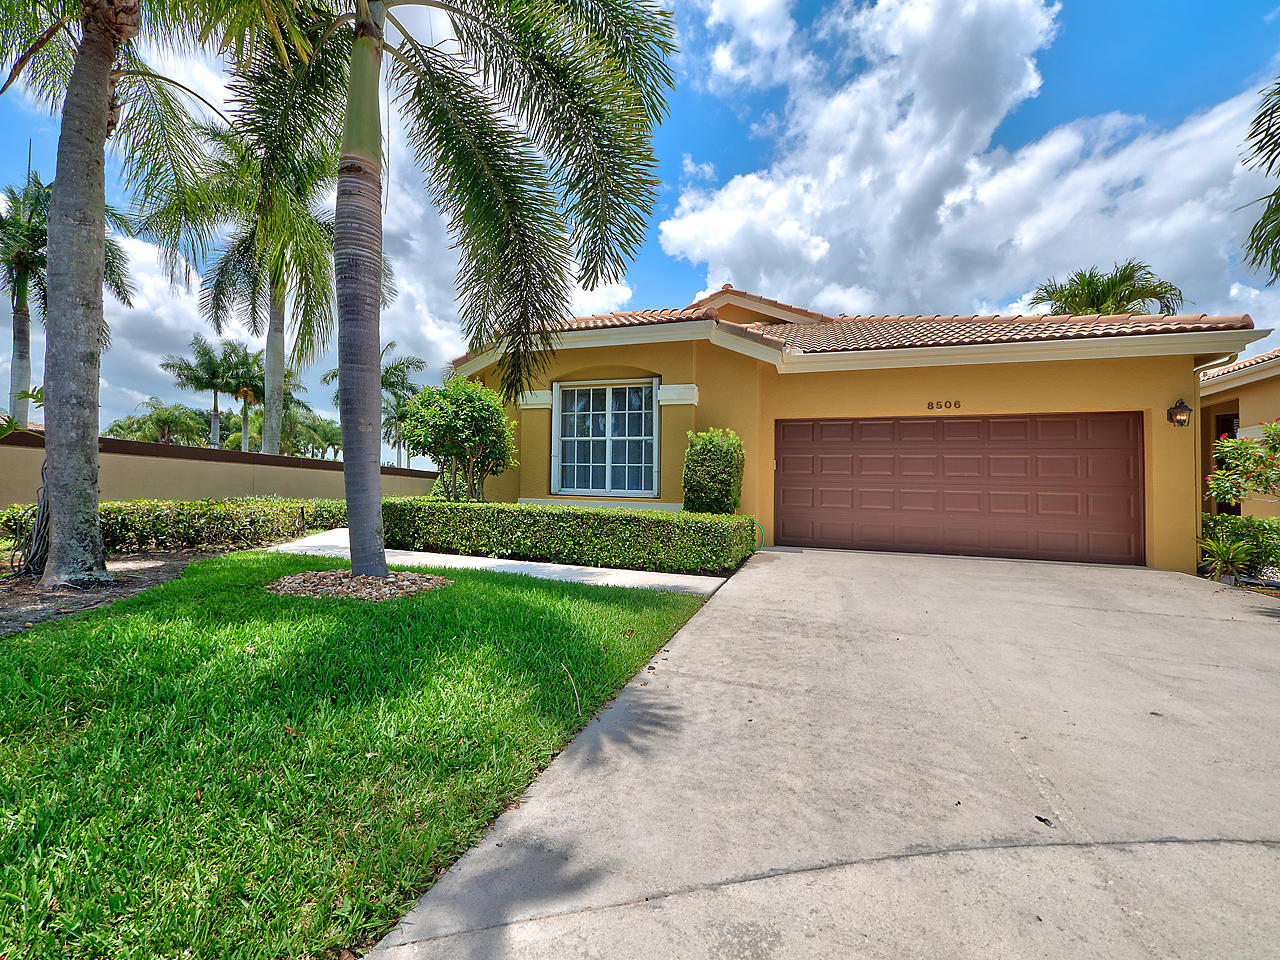 8506 Quail Meadow Way, West Palm Beach, FL 33412